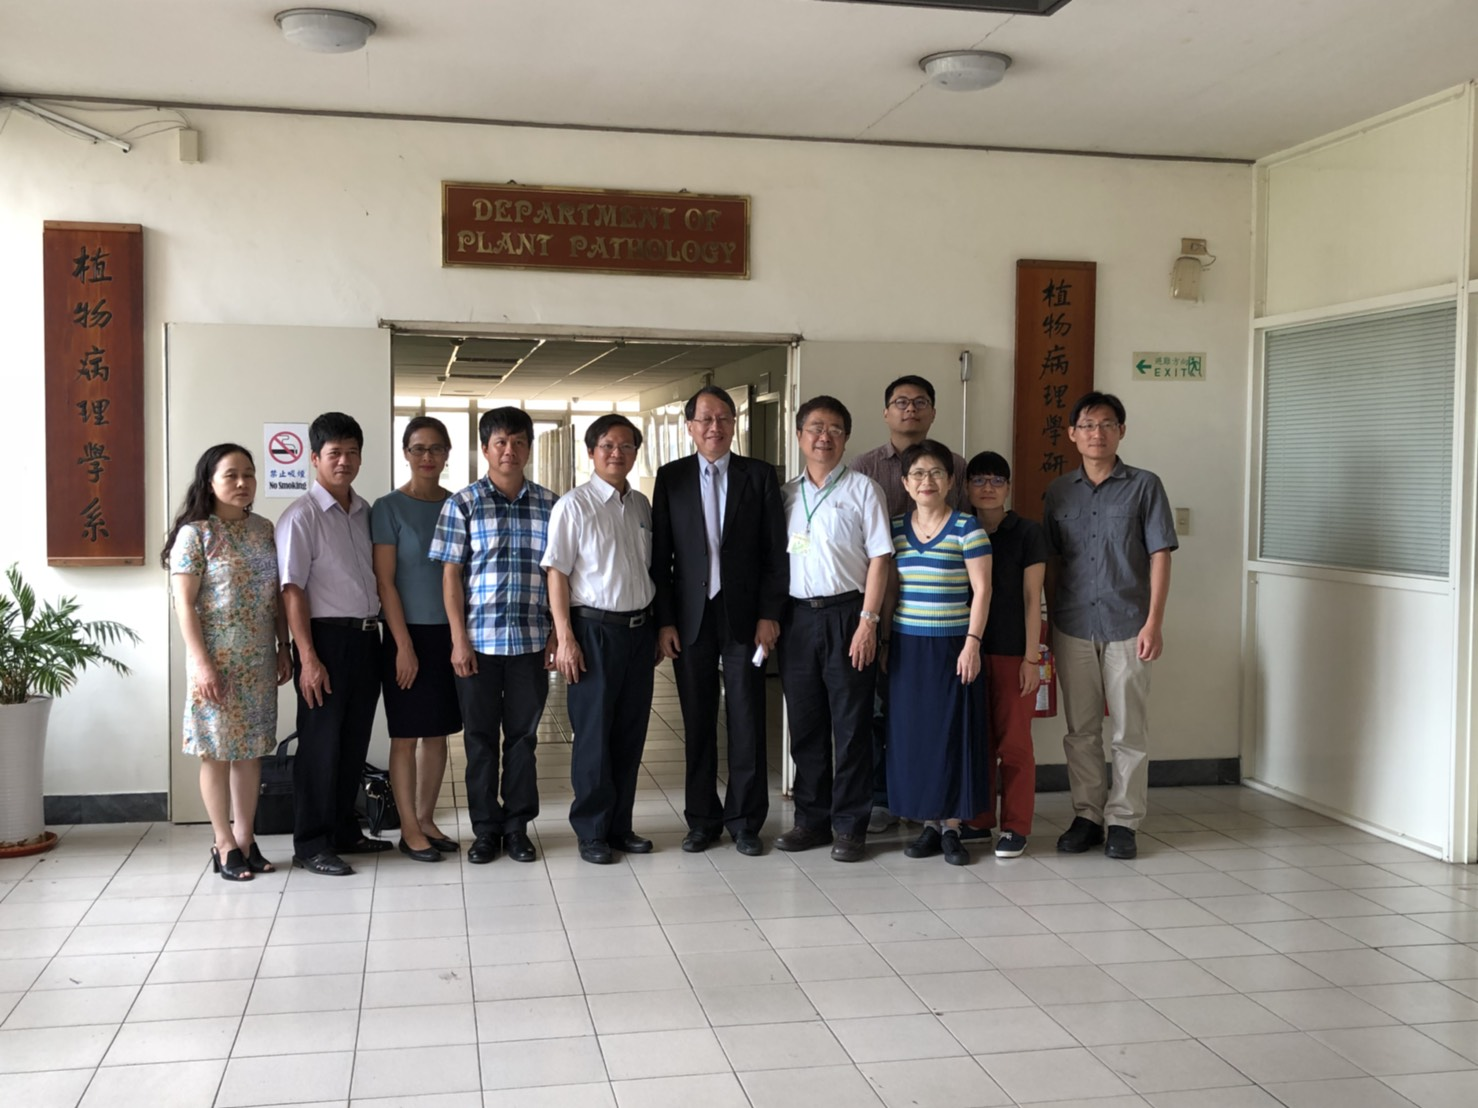 Photo taken with professors and students of NCHU Plant Pathology Department